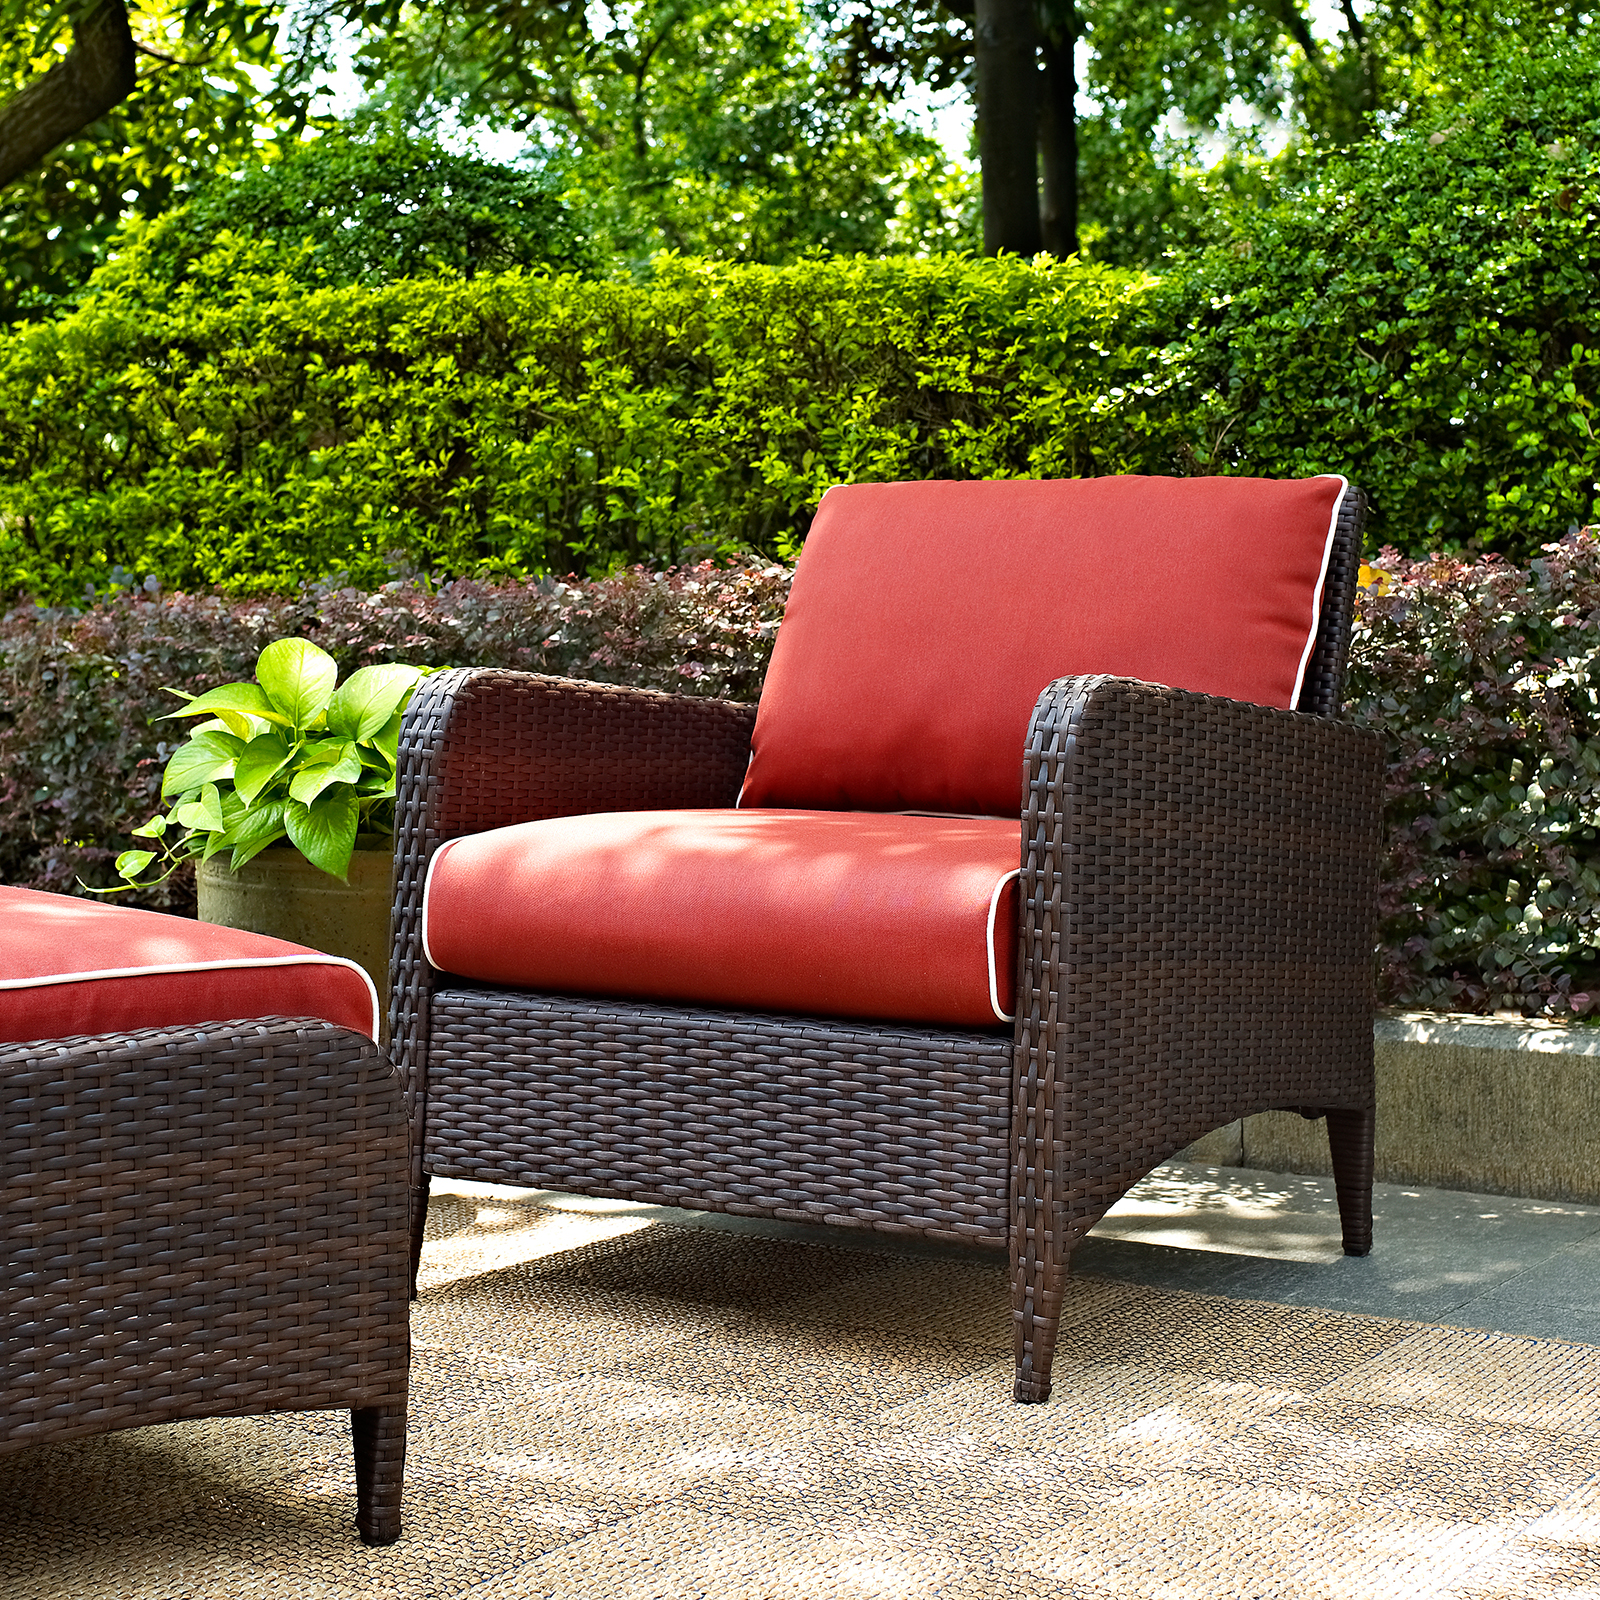 Outdoor Lounge Furniture Masters   Outdoor Wicker Arm Chair with Sangria  Cushions Outdoor Lounge Chairs. Outdoor Lounge Furniture Masters 19046046   Ongek net